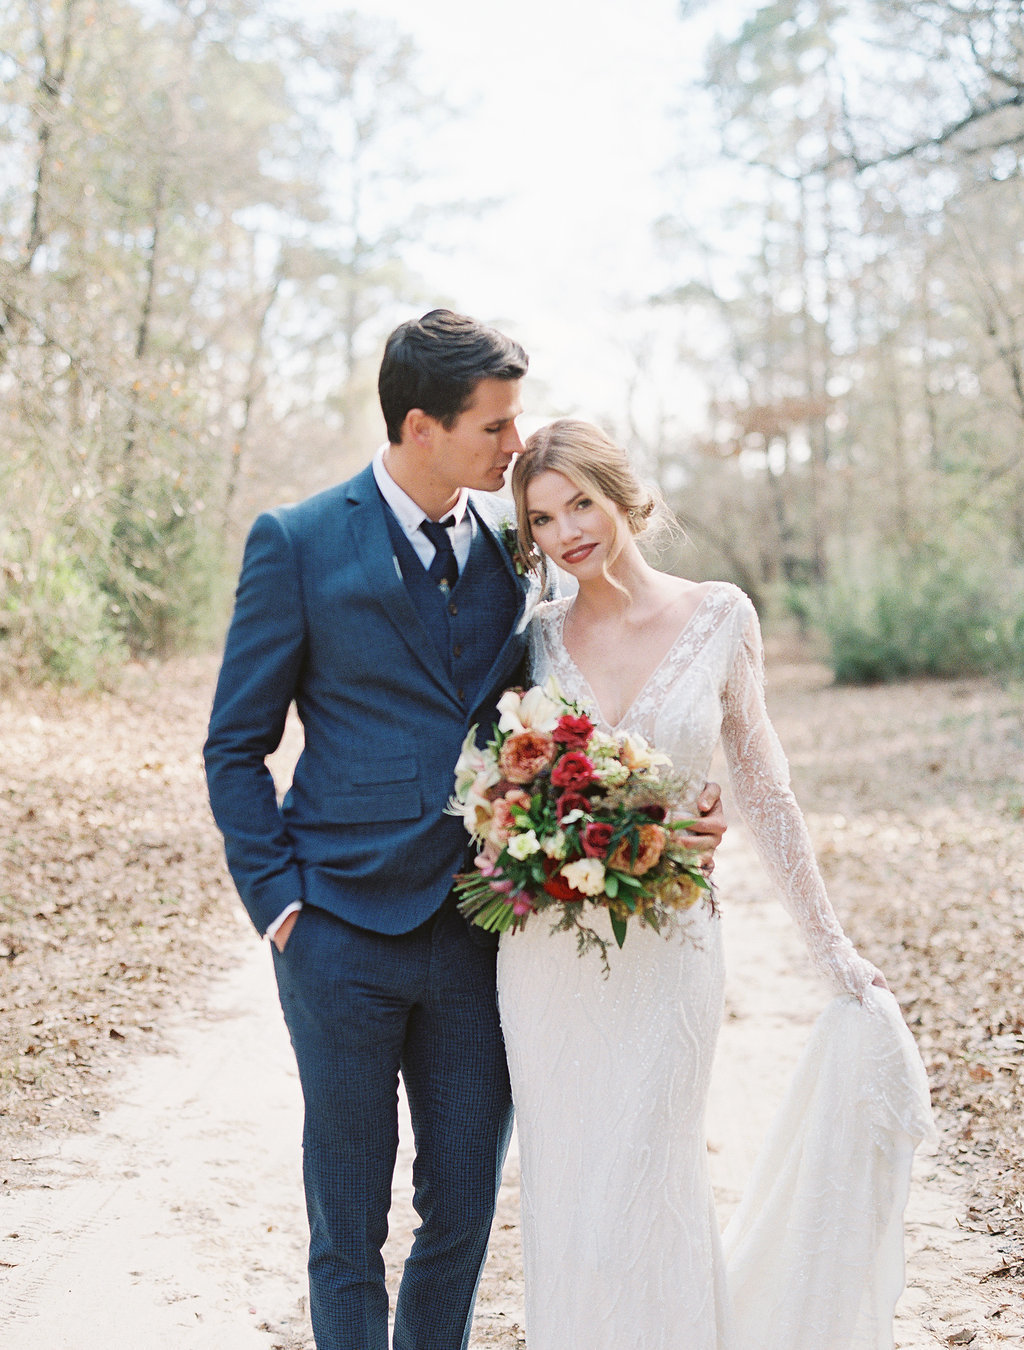 wavering-place-south-carolina-wedding-event-planner-jessica-rourke-383